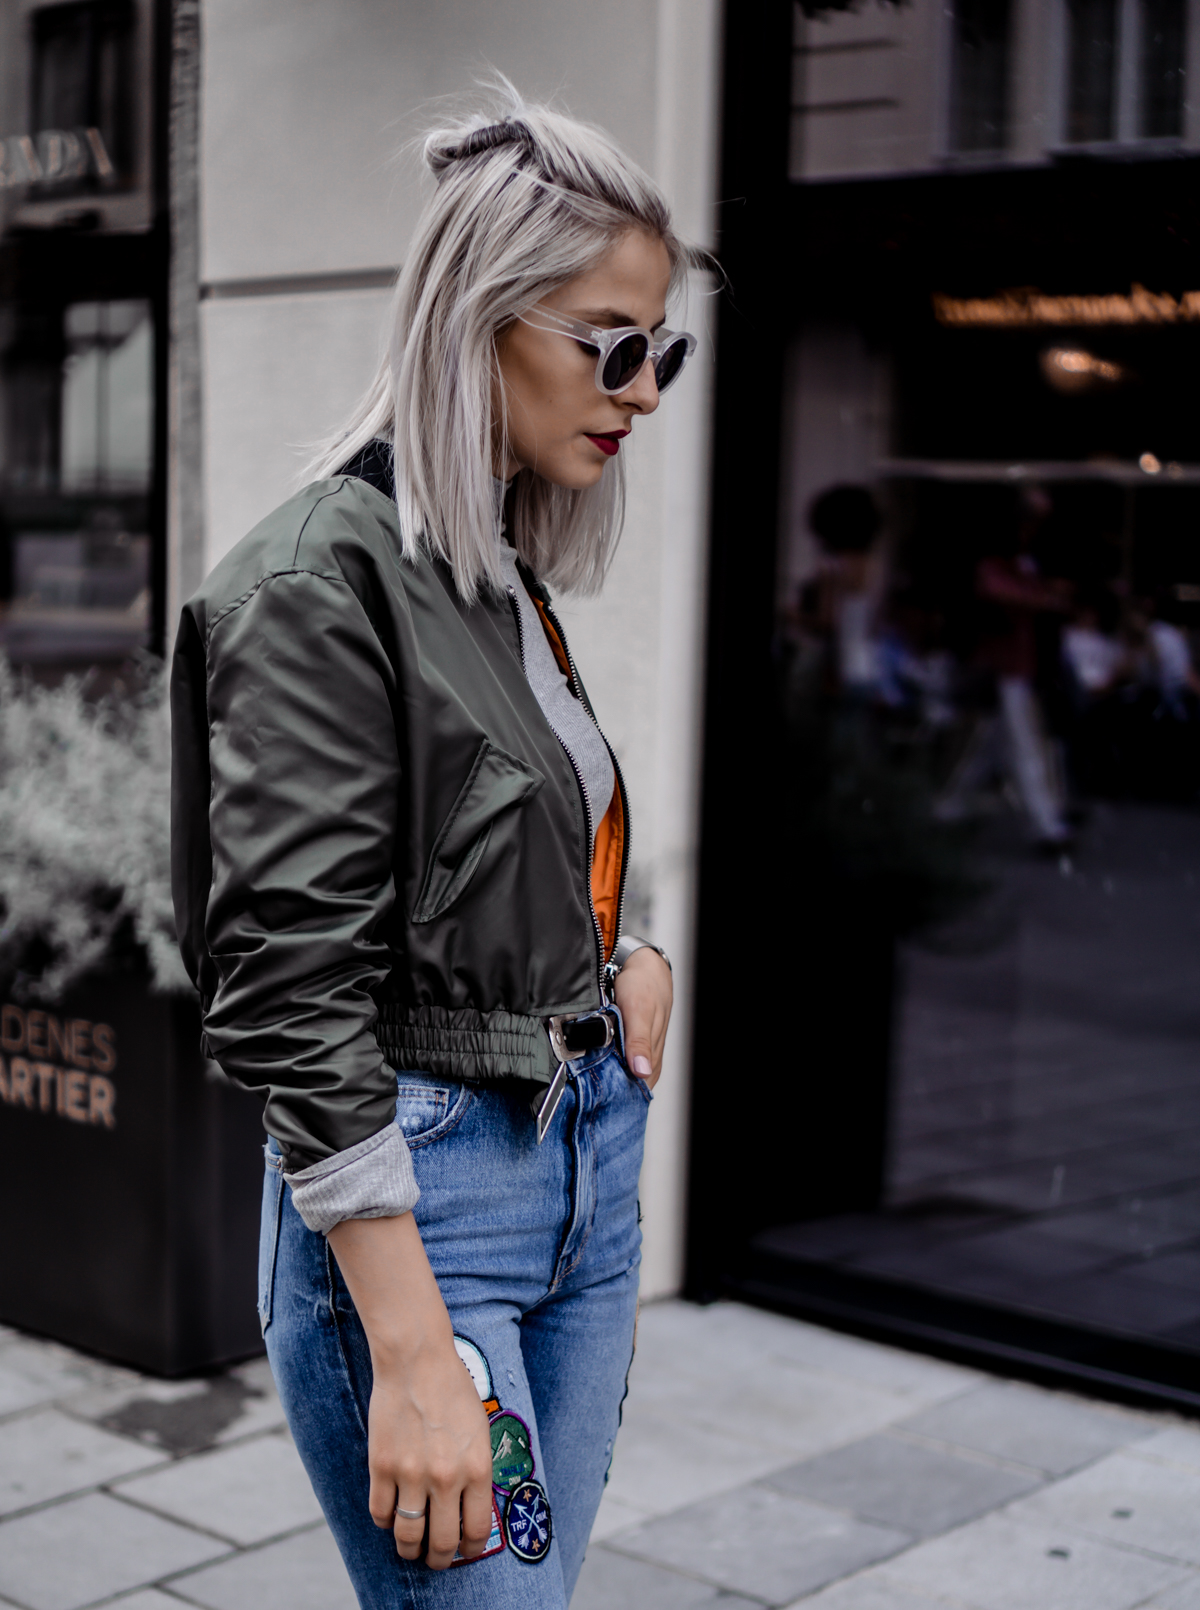 The Cosmopolitas Outfit: Mom Jeans and Bomber Jacket